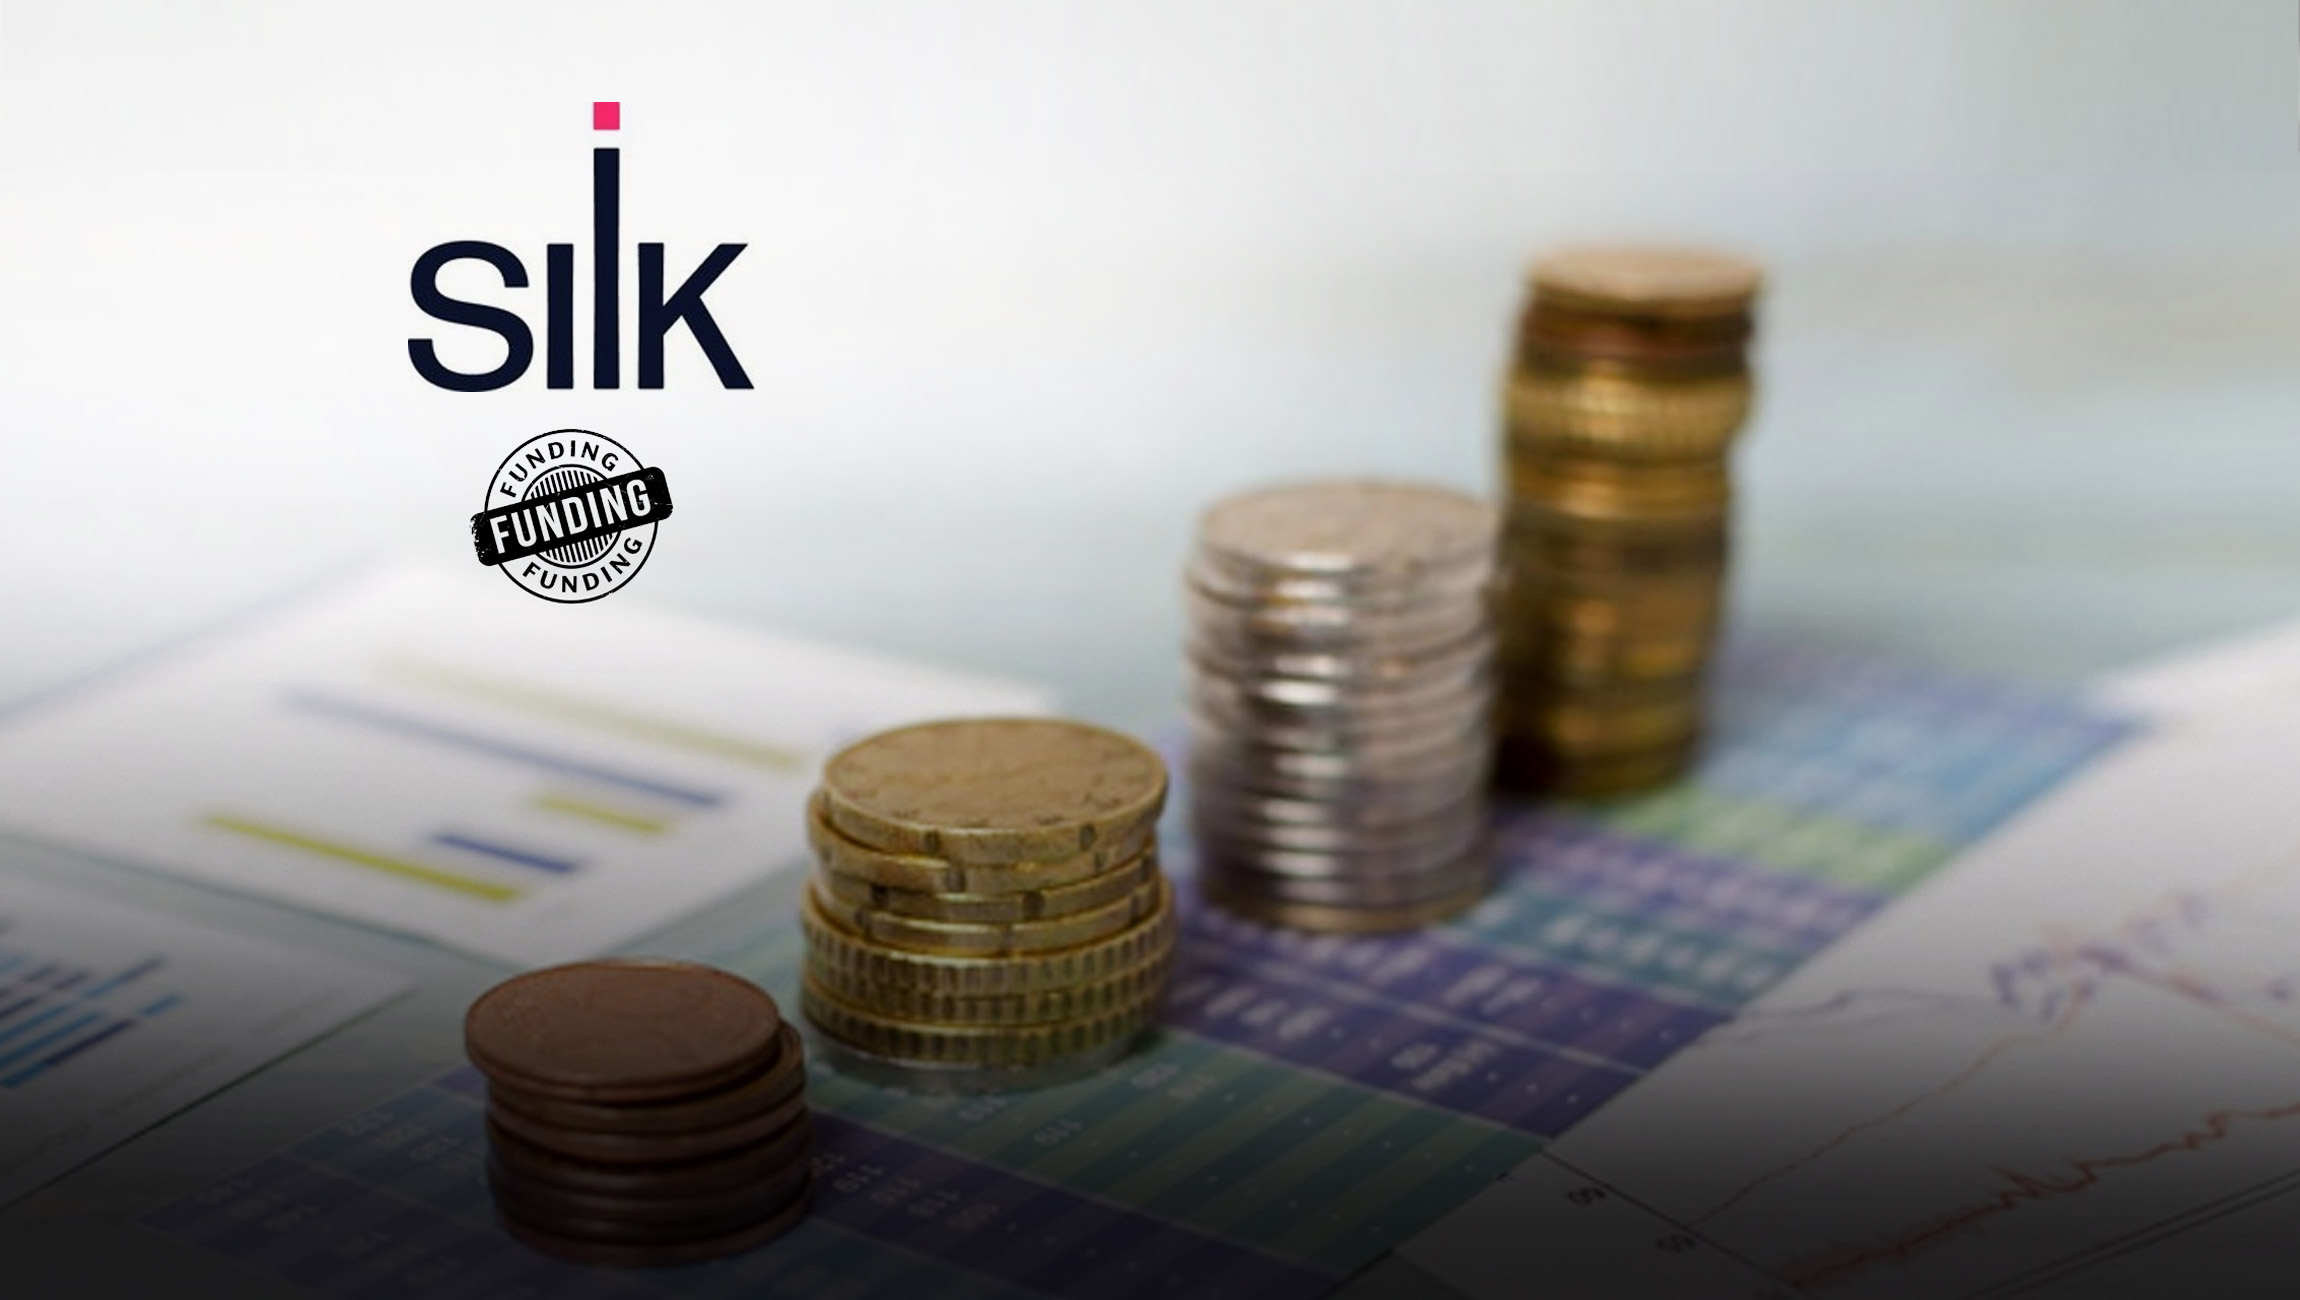 Silk Secures $55M in Series B Financing Round Led by S Capital